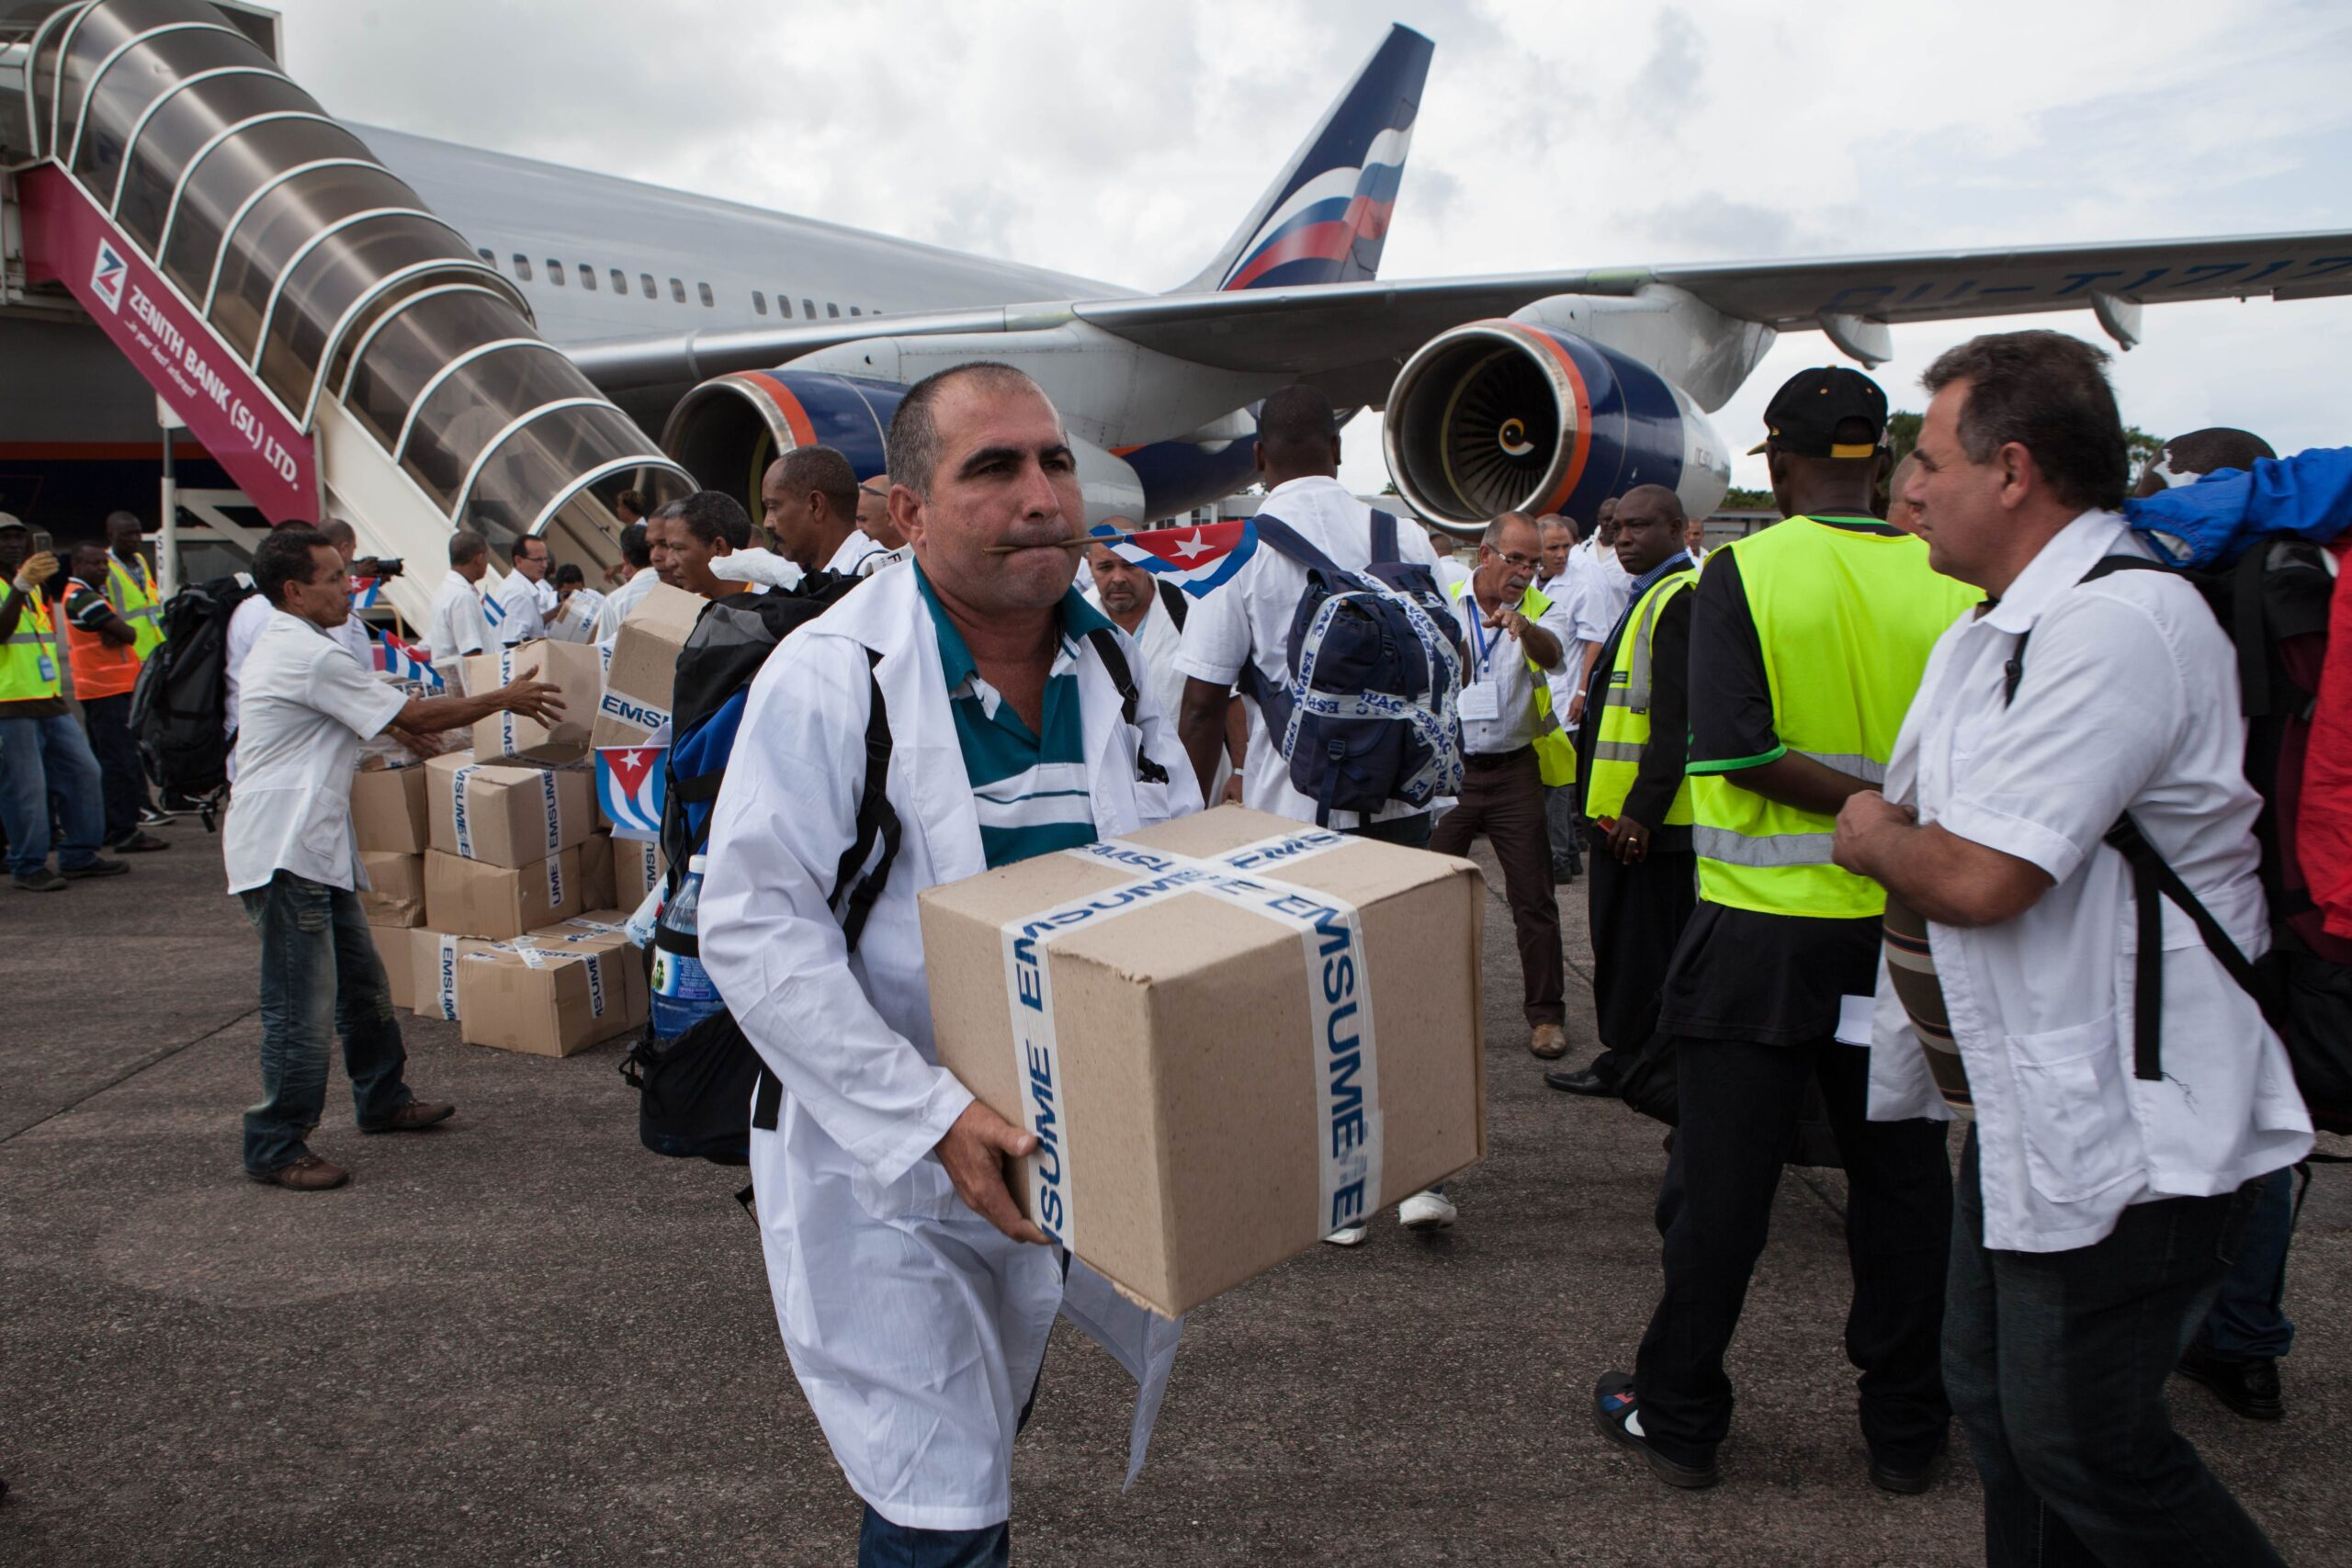 The first members of a team of 165 Cuban doctors and health workers unload boxes of medicines and medical material from a plane upon their arrival at Freetown's airport to help the fight against Ebola in Sierra Leone on Thursday.   AFP-JIJI